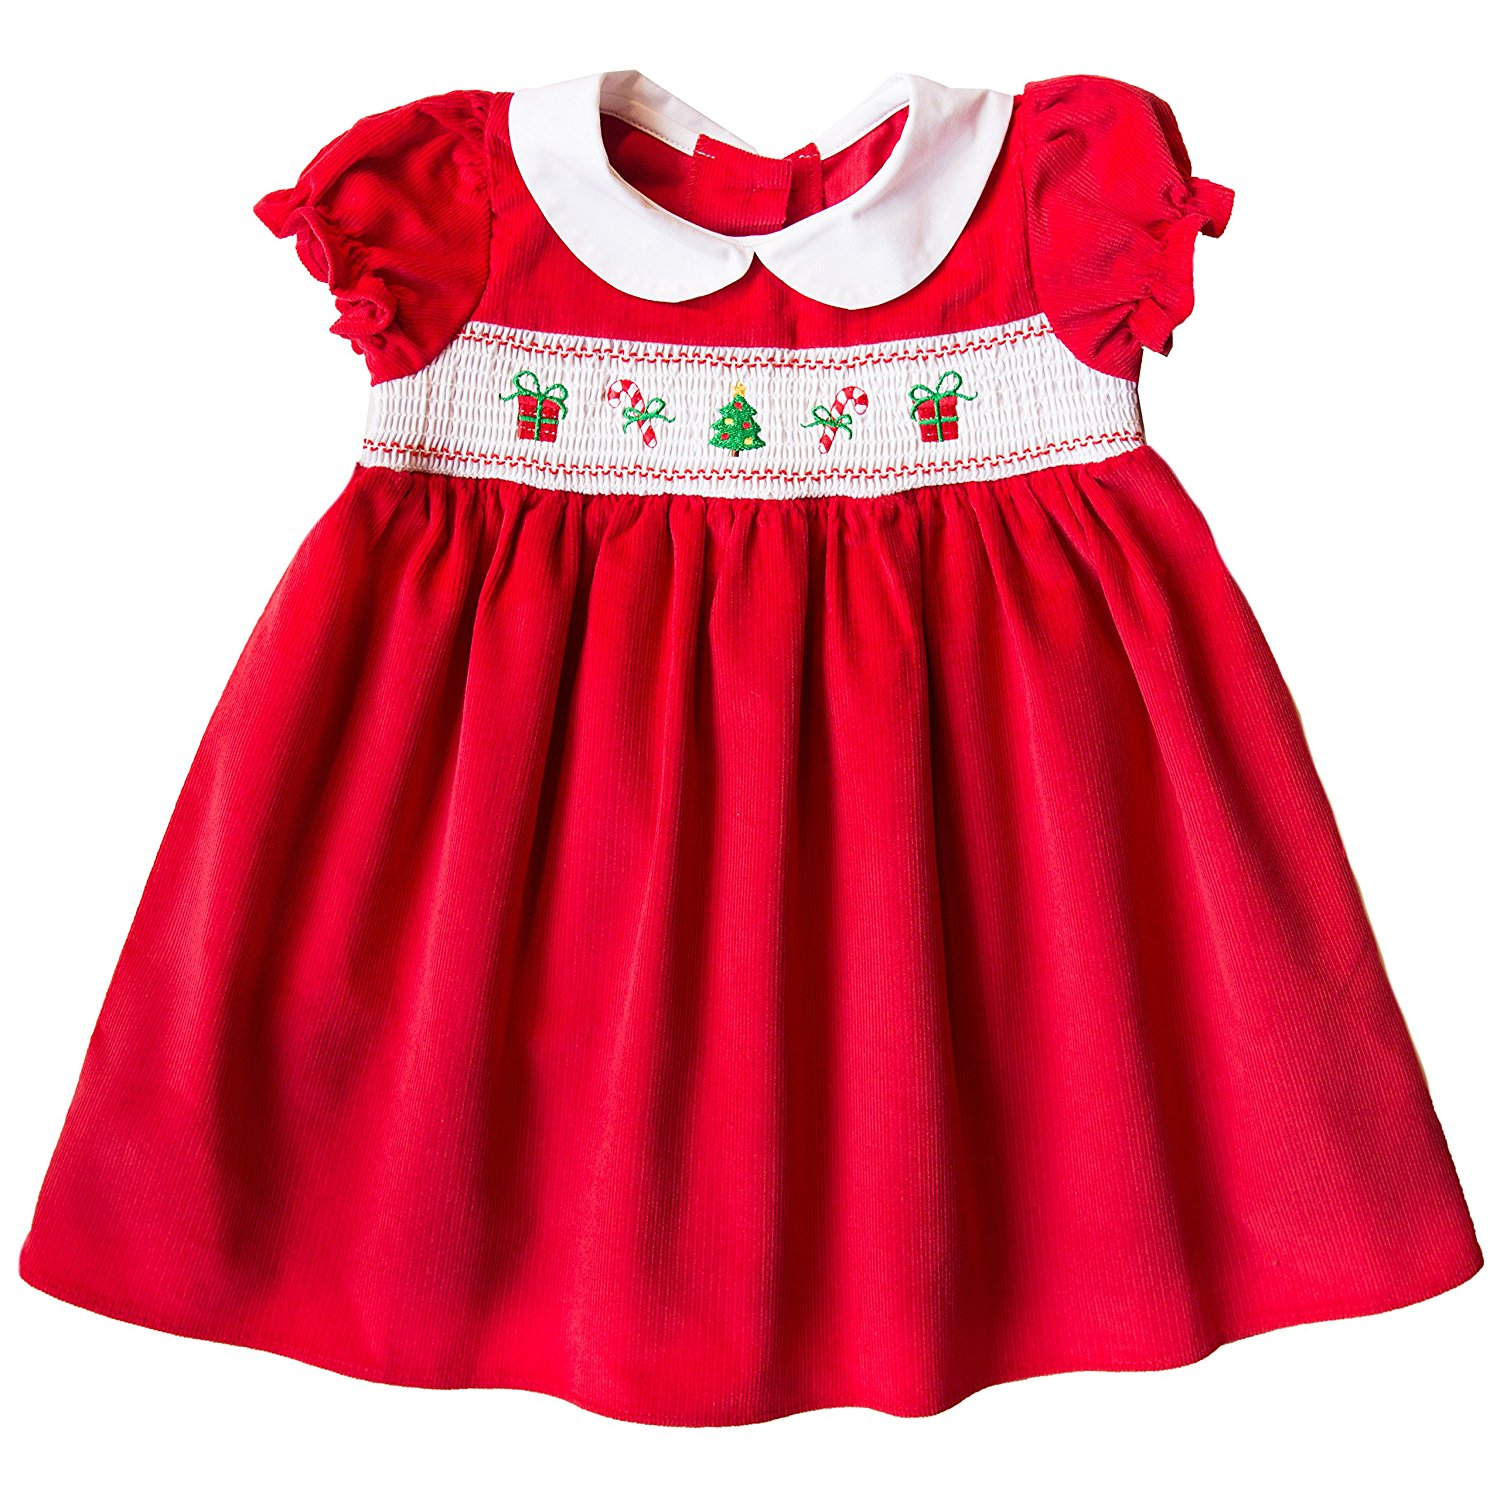 d7fbb006b13a Get Quotations · Good Lad Newborn Infant Girl Red Corduroy Smocked  Christmas Dress